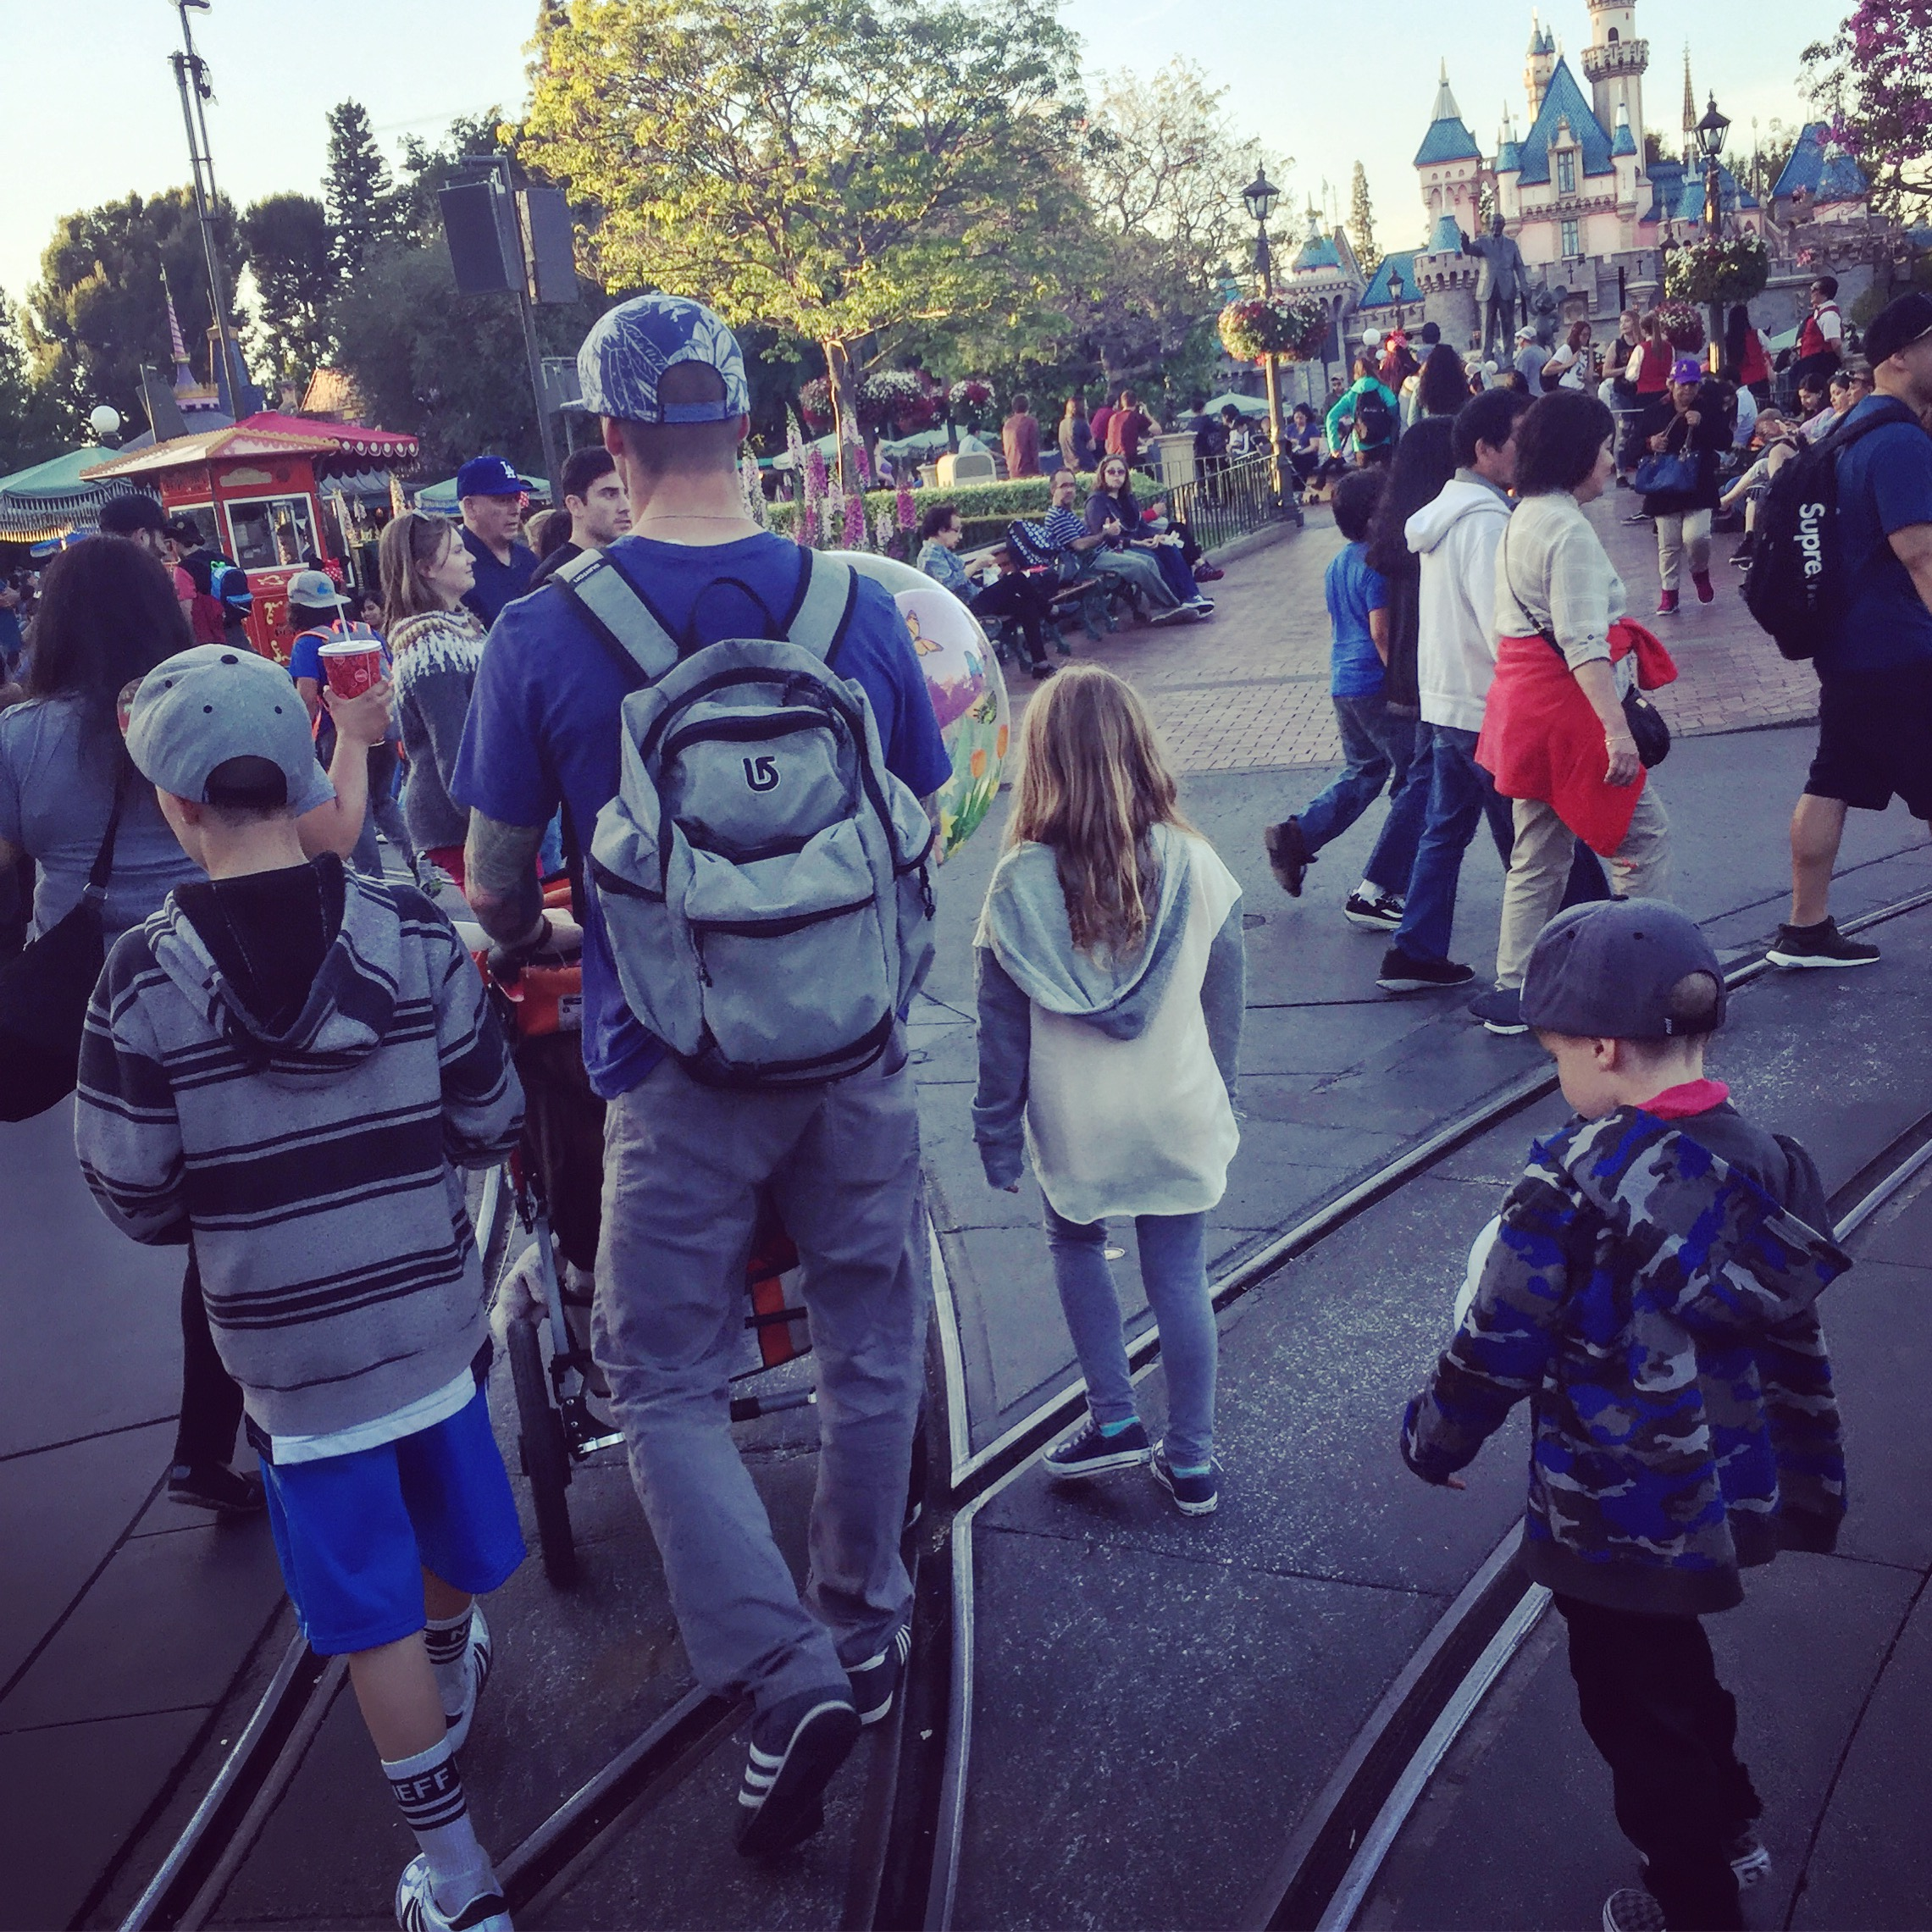 Parenting Styles: Taking a 2-year-old on a 9 Hour Road Trip to Disneyland.